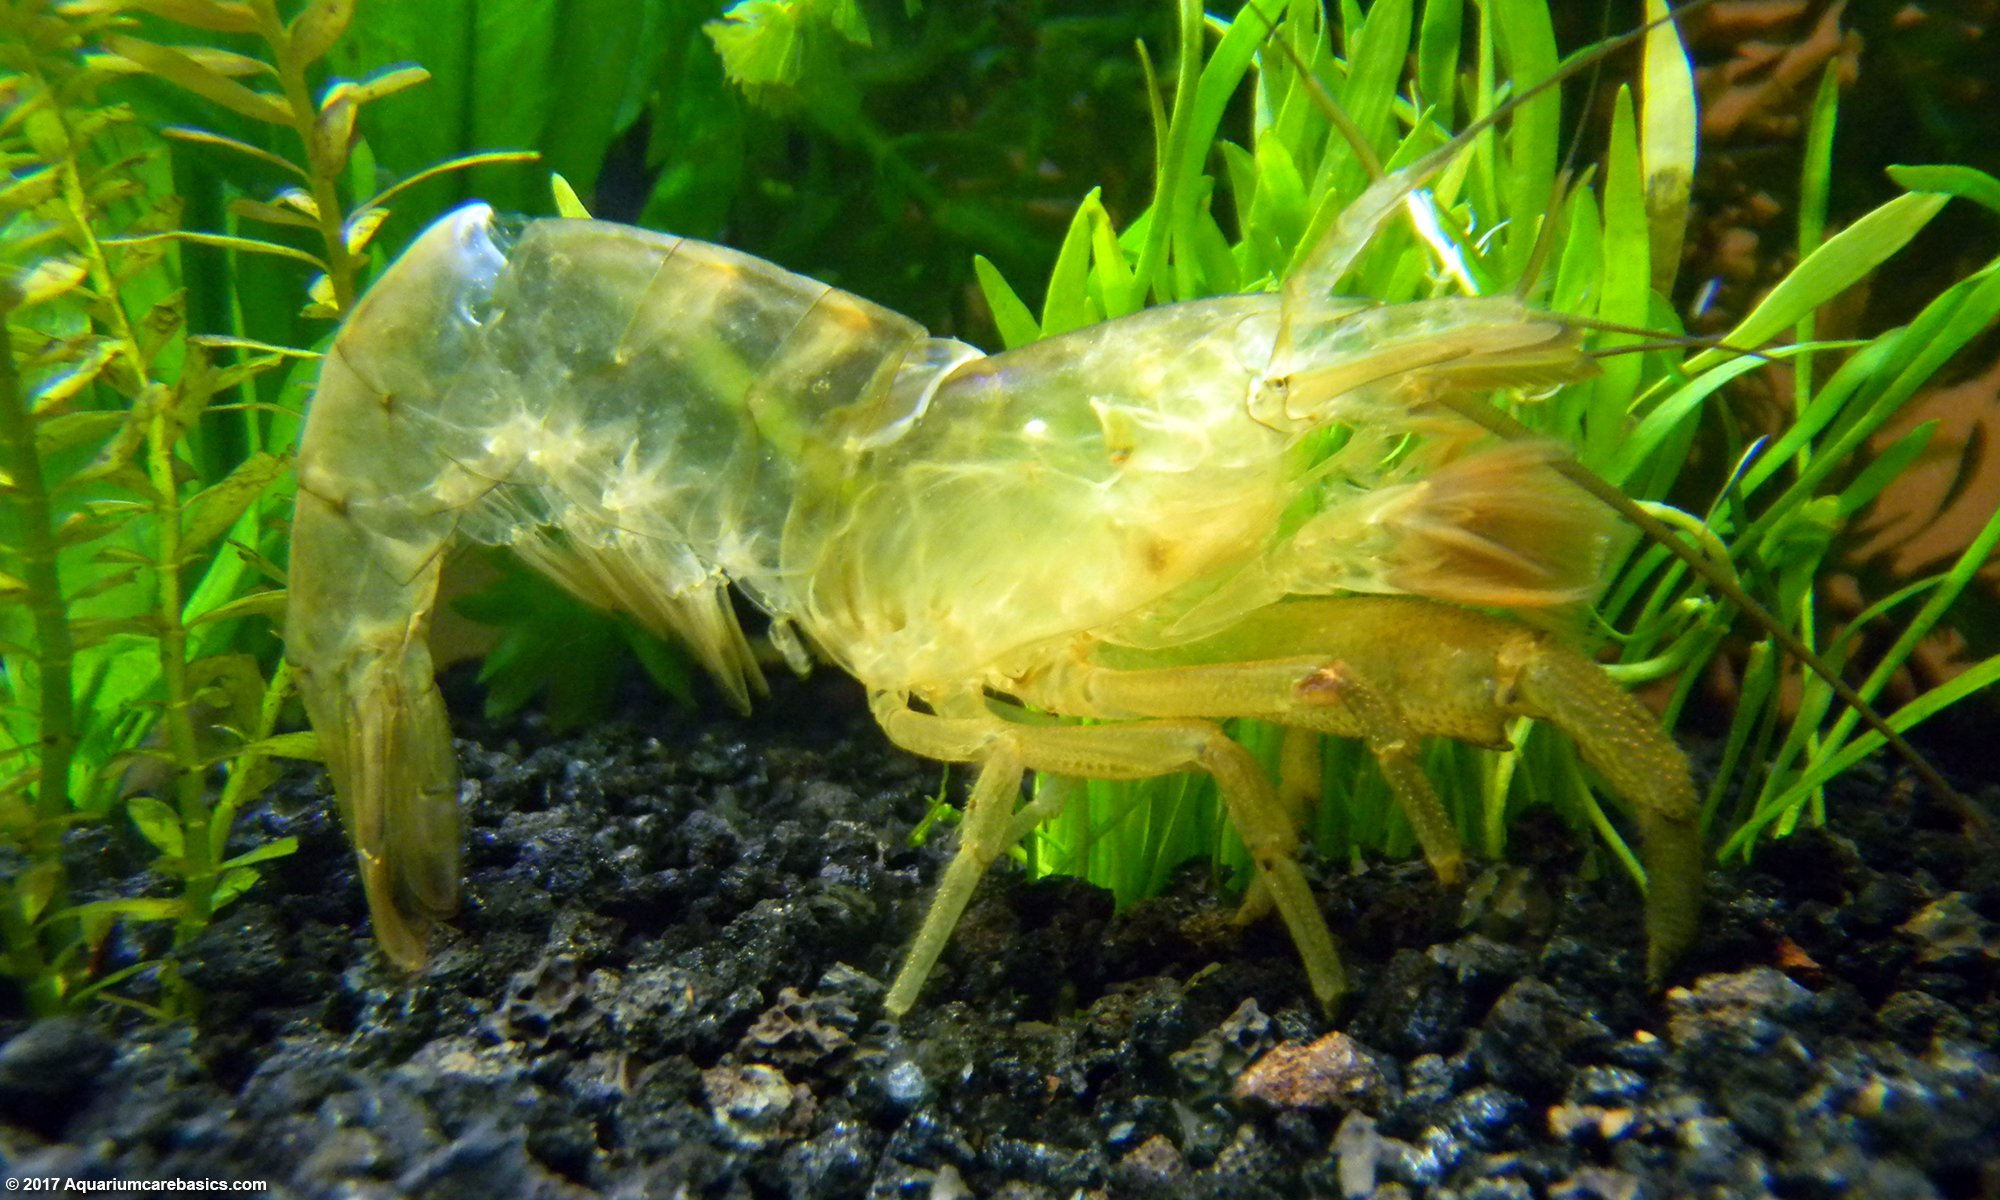 Bamboo Shrimp Shell After Molting, Leaving Its Exoskeleton Behind